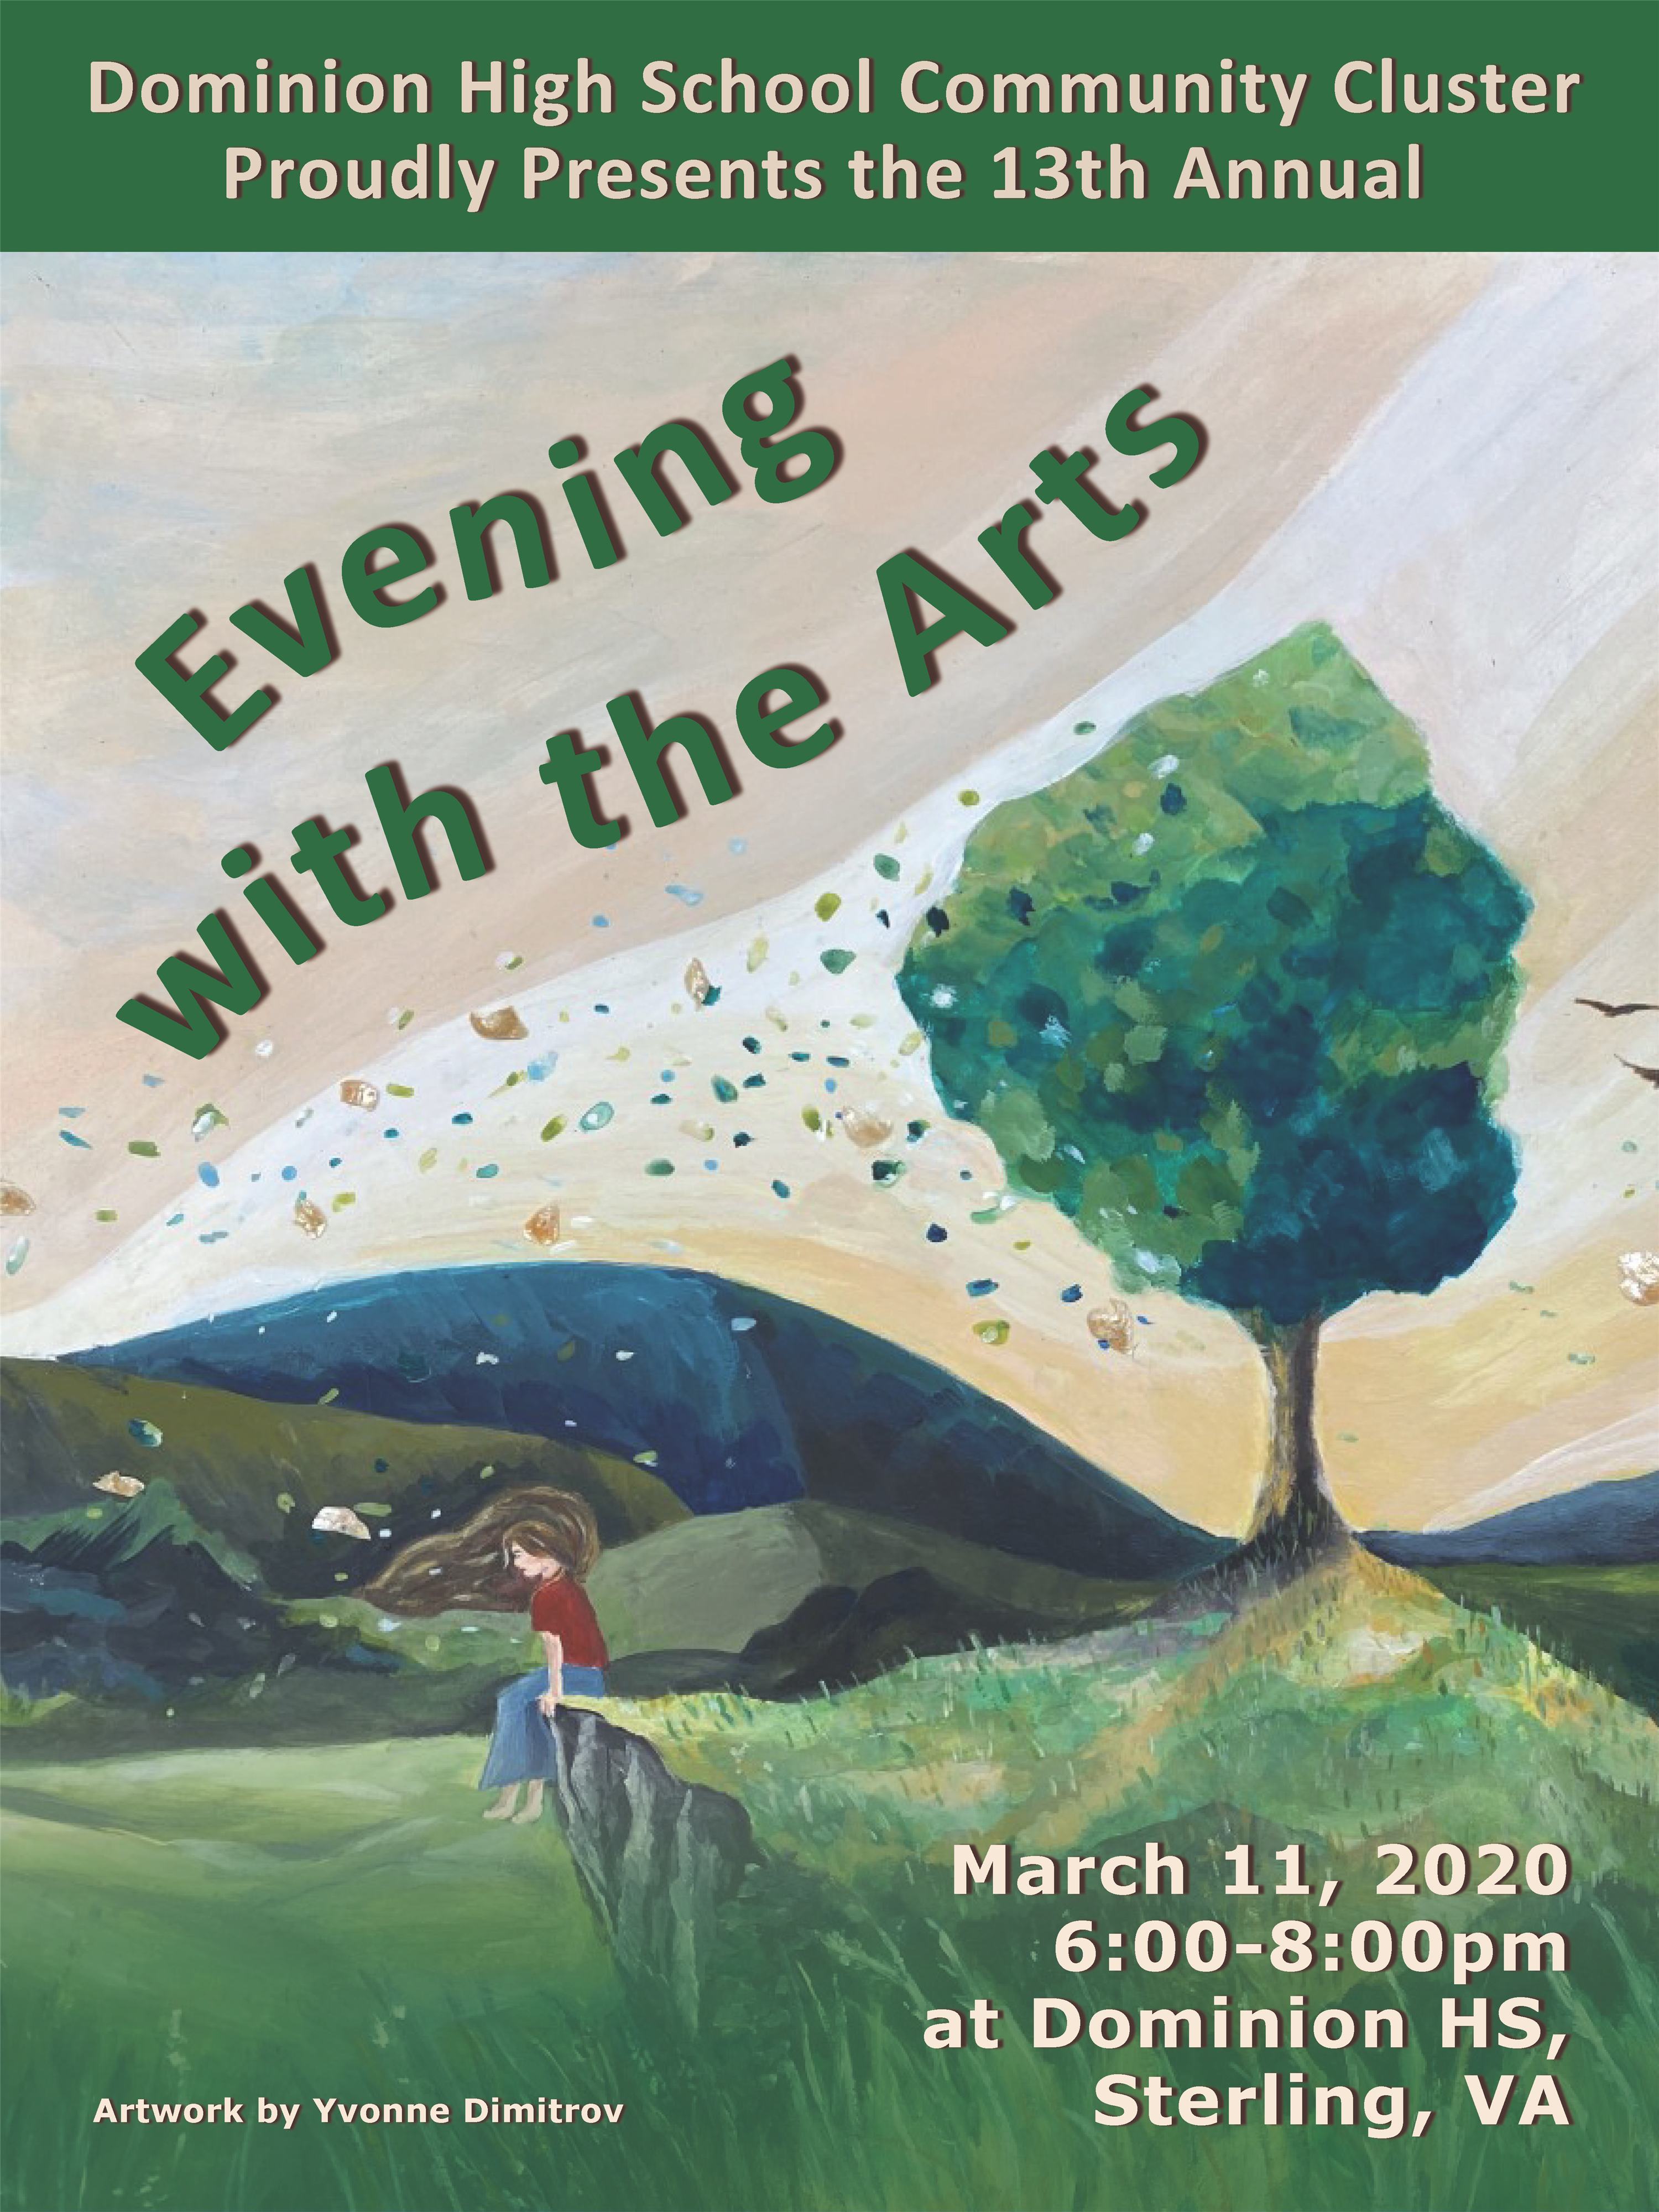 Evening with the Arts March 11